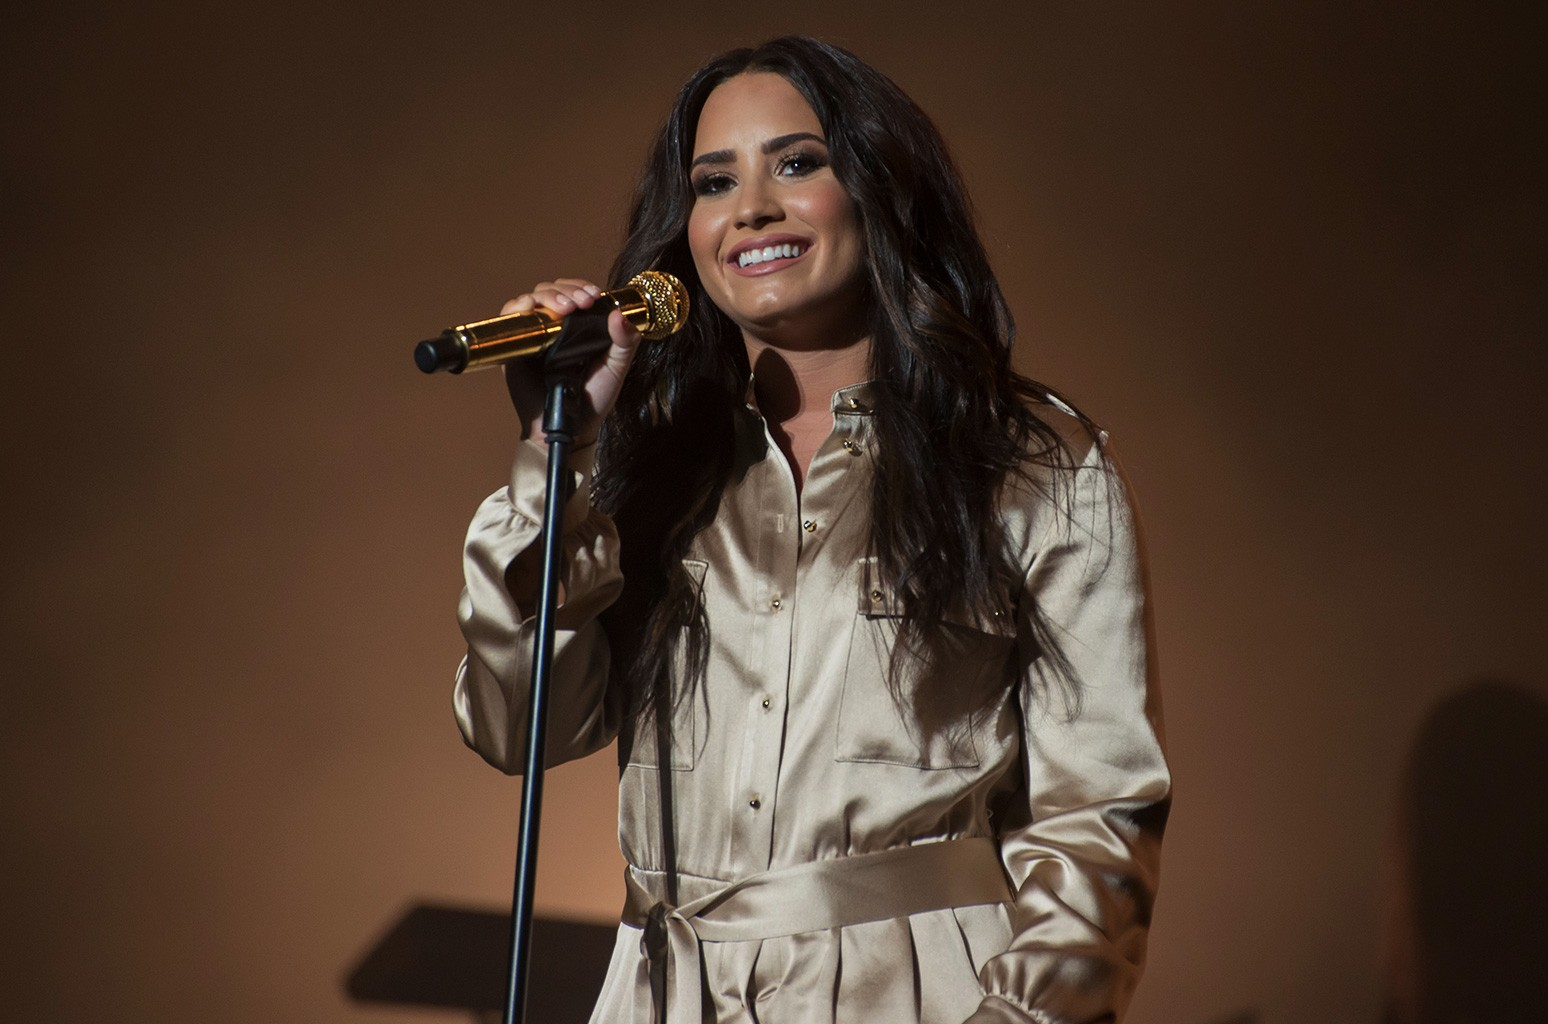 Demi Lovato performs during the 16th International Mawazine Music Festival at Olm Souissi stage in, Rabat, Morocco on May 20, 2017.